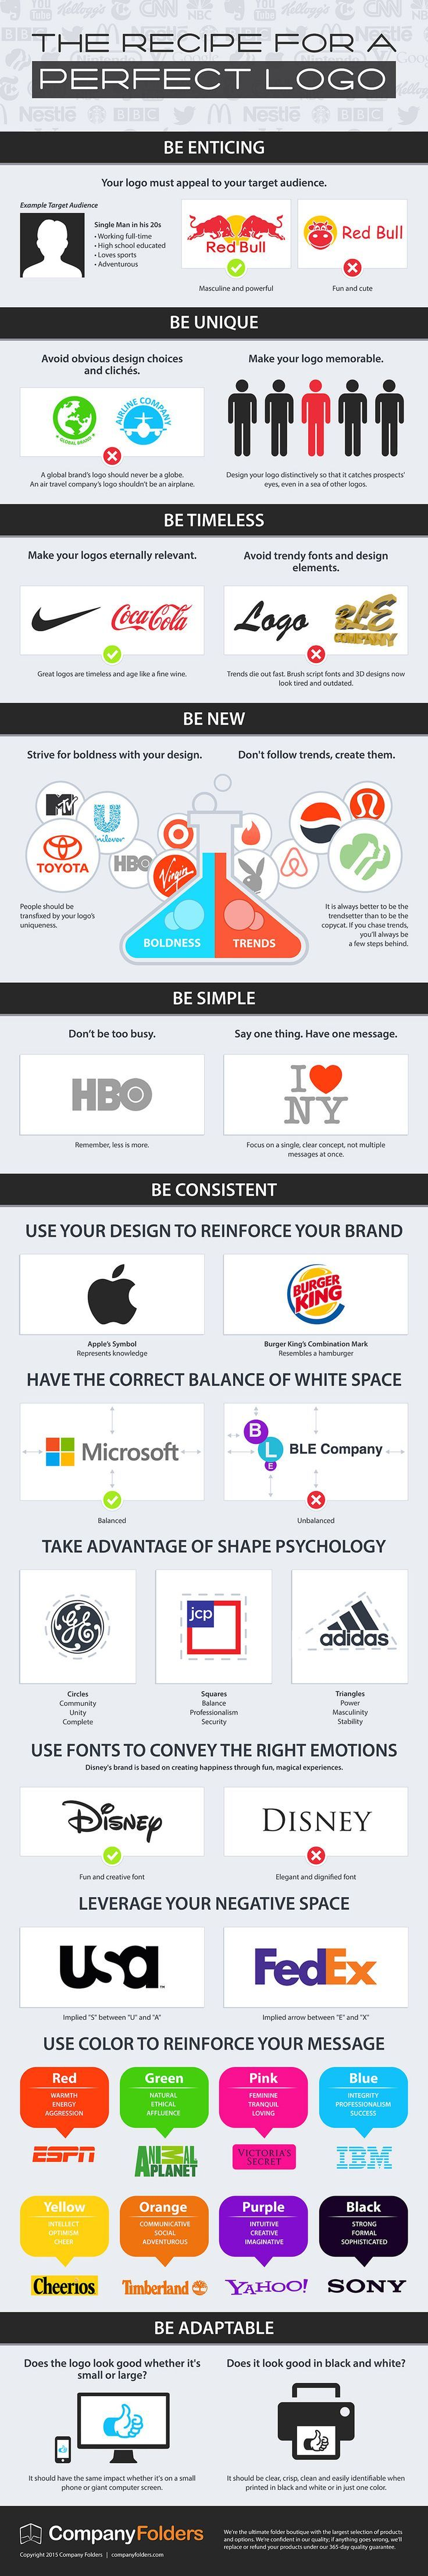 how to design the perfect logo infographic